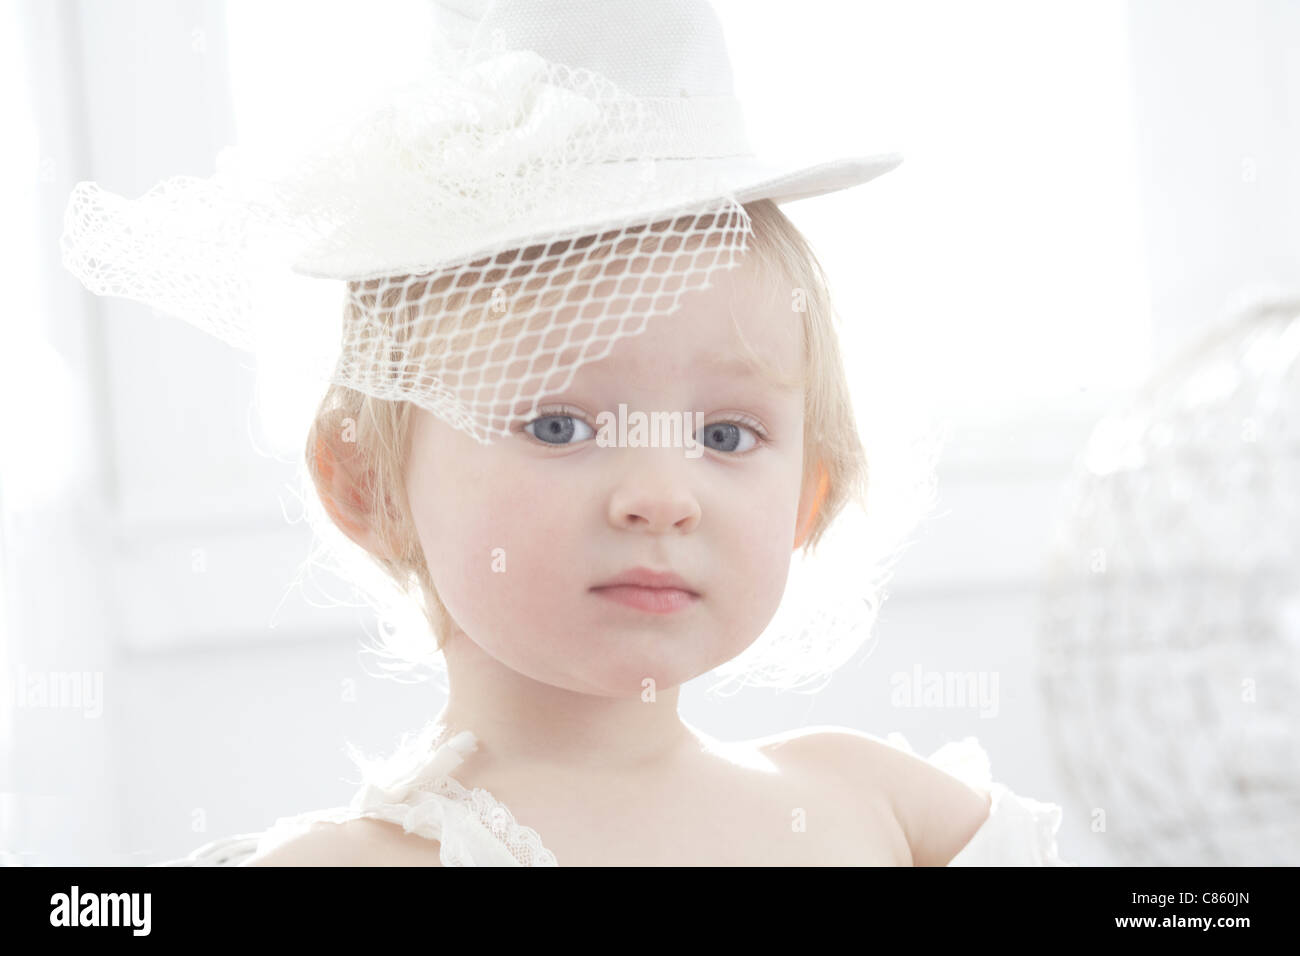 Petite fille portant un chapeau de fantaisie Photo Stock